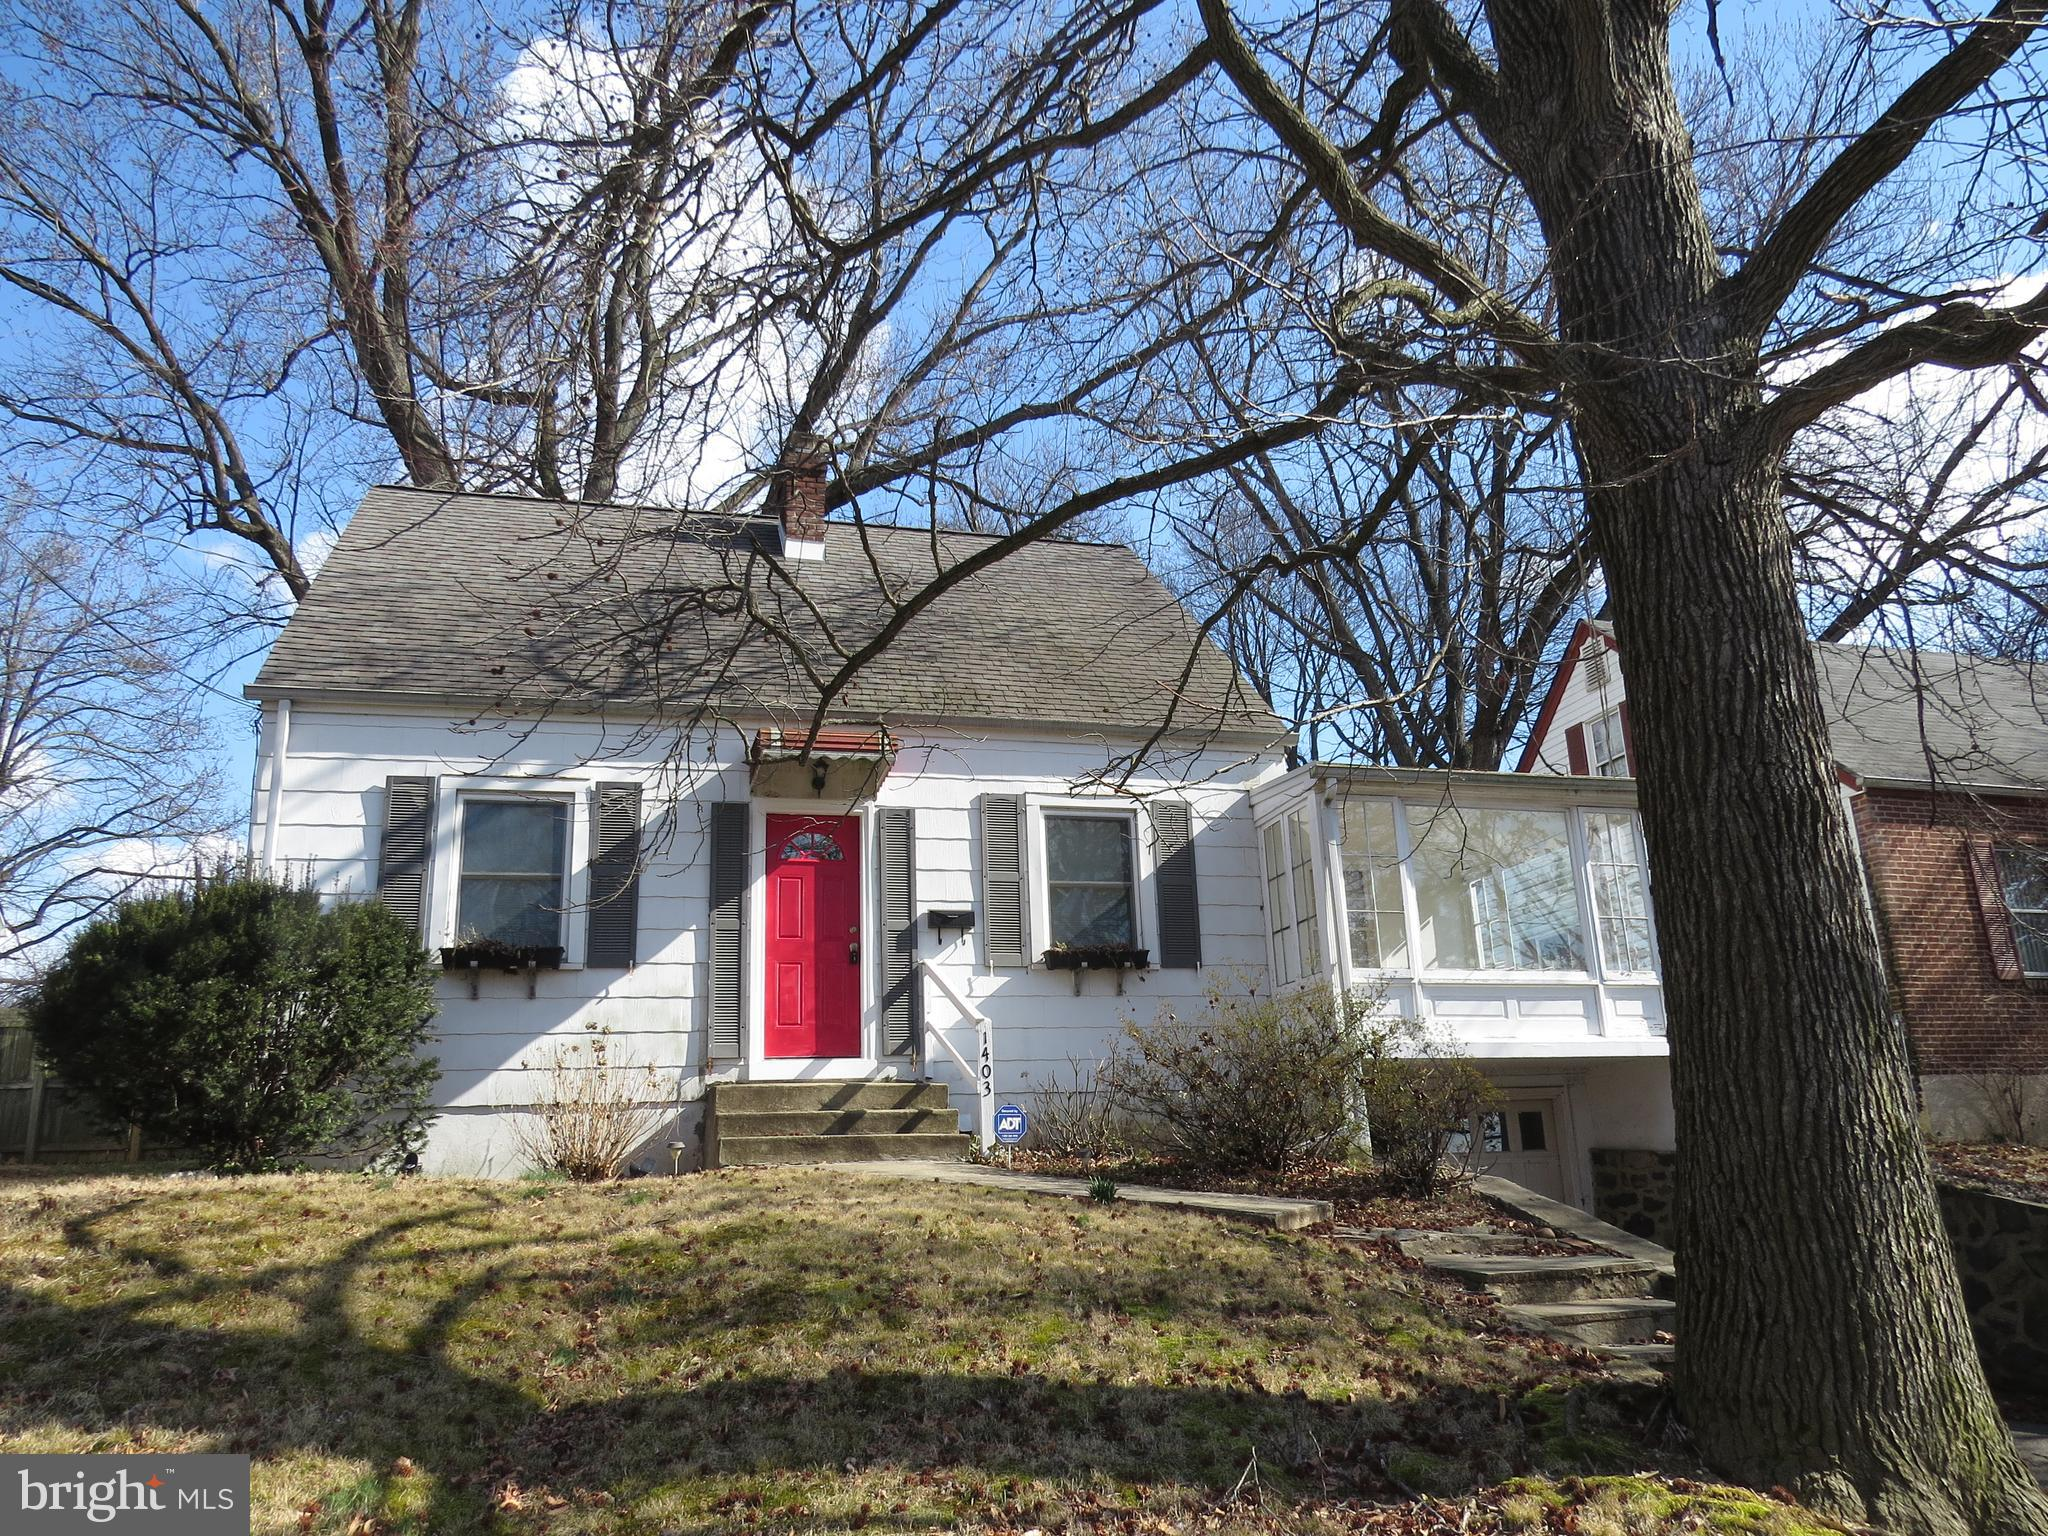 1403 HAINES AVENUE  Home Listings - John and Mary Luca Hockessin, Greenville, Newark, Middletown, Bear, North Wilmington, Wilmington, Brandywine Hundred, Pike Creek, Smyrna, Townsend, Dover, Rehoboth, Bethany, Lewes, Milford, Malvern, Avondale, Landenberg